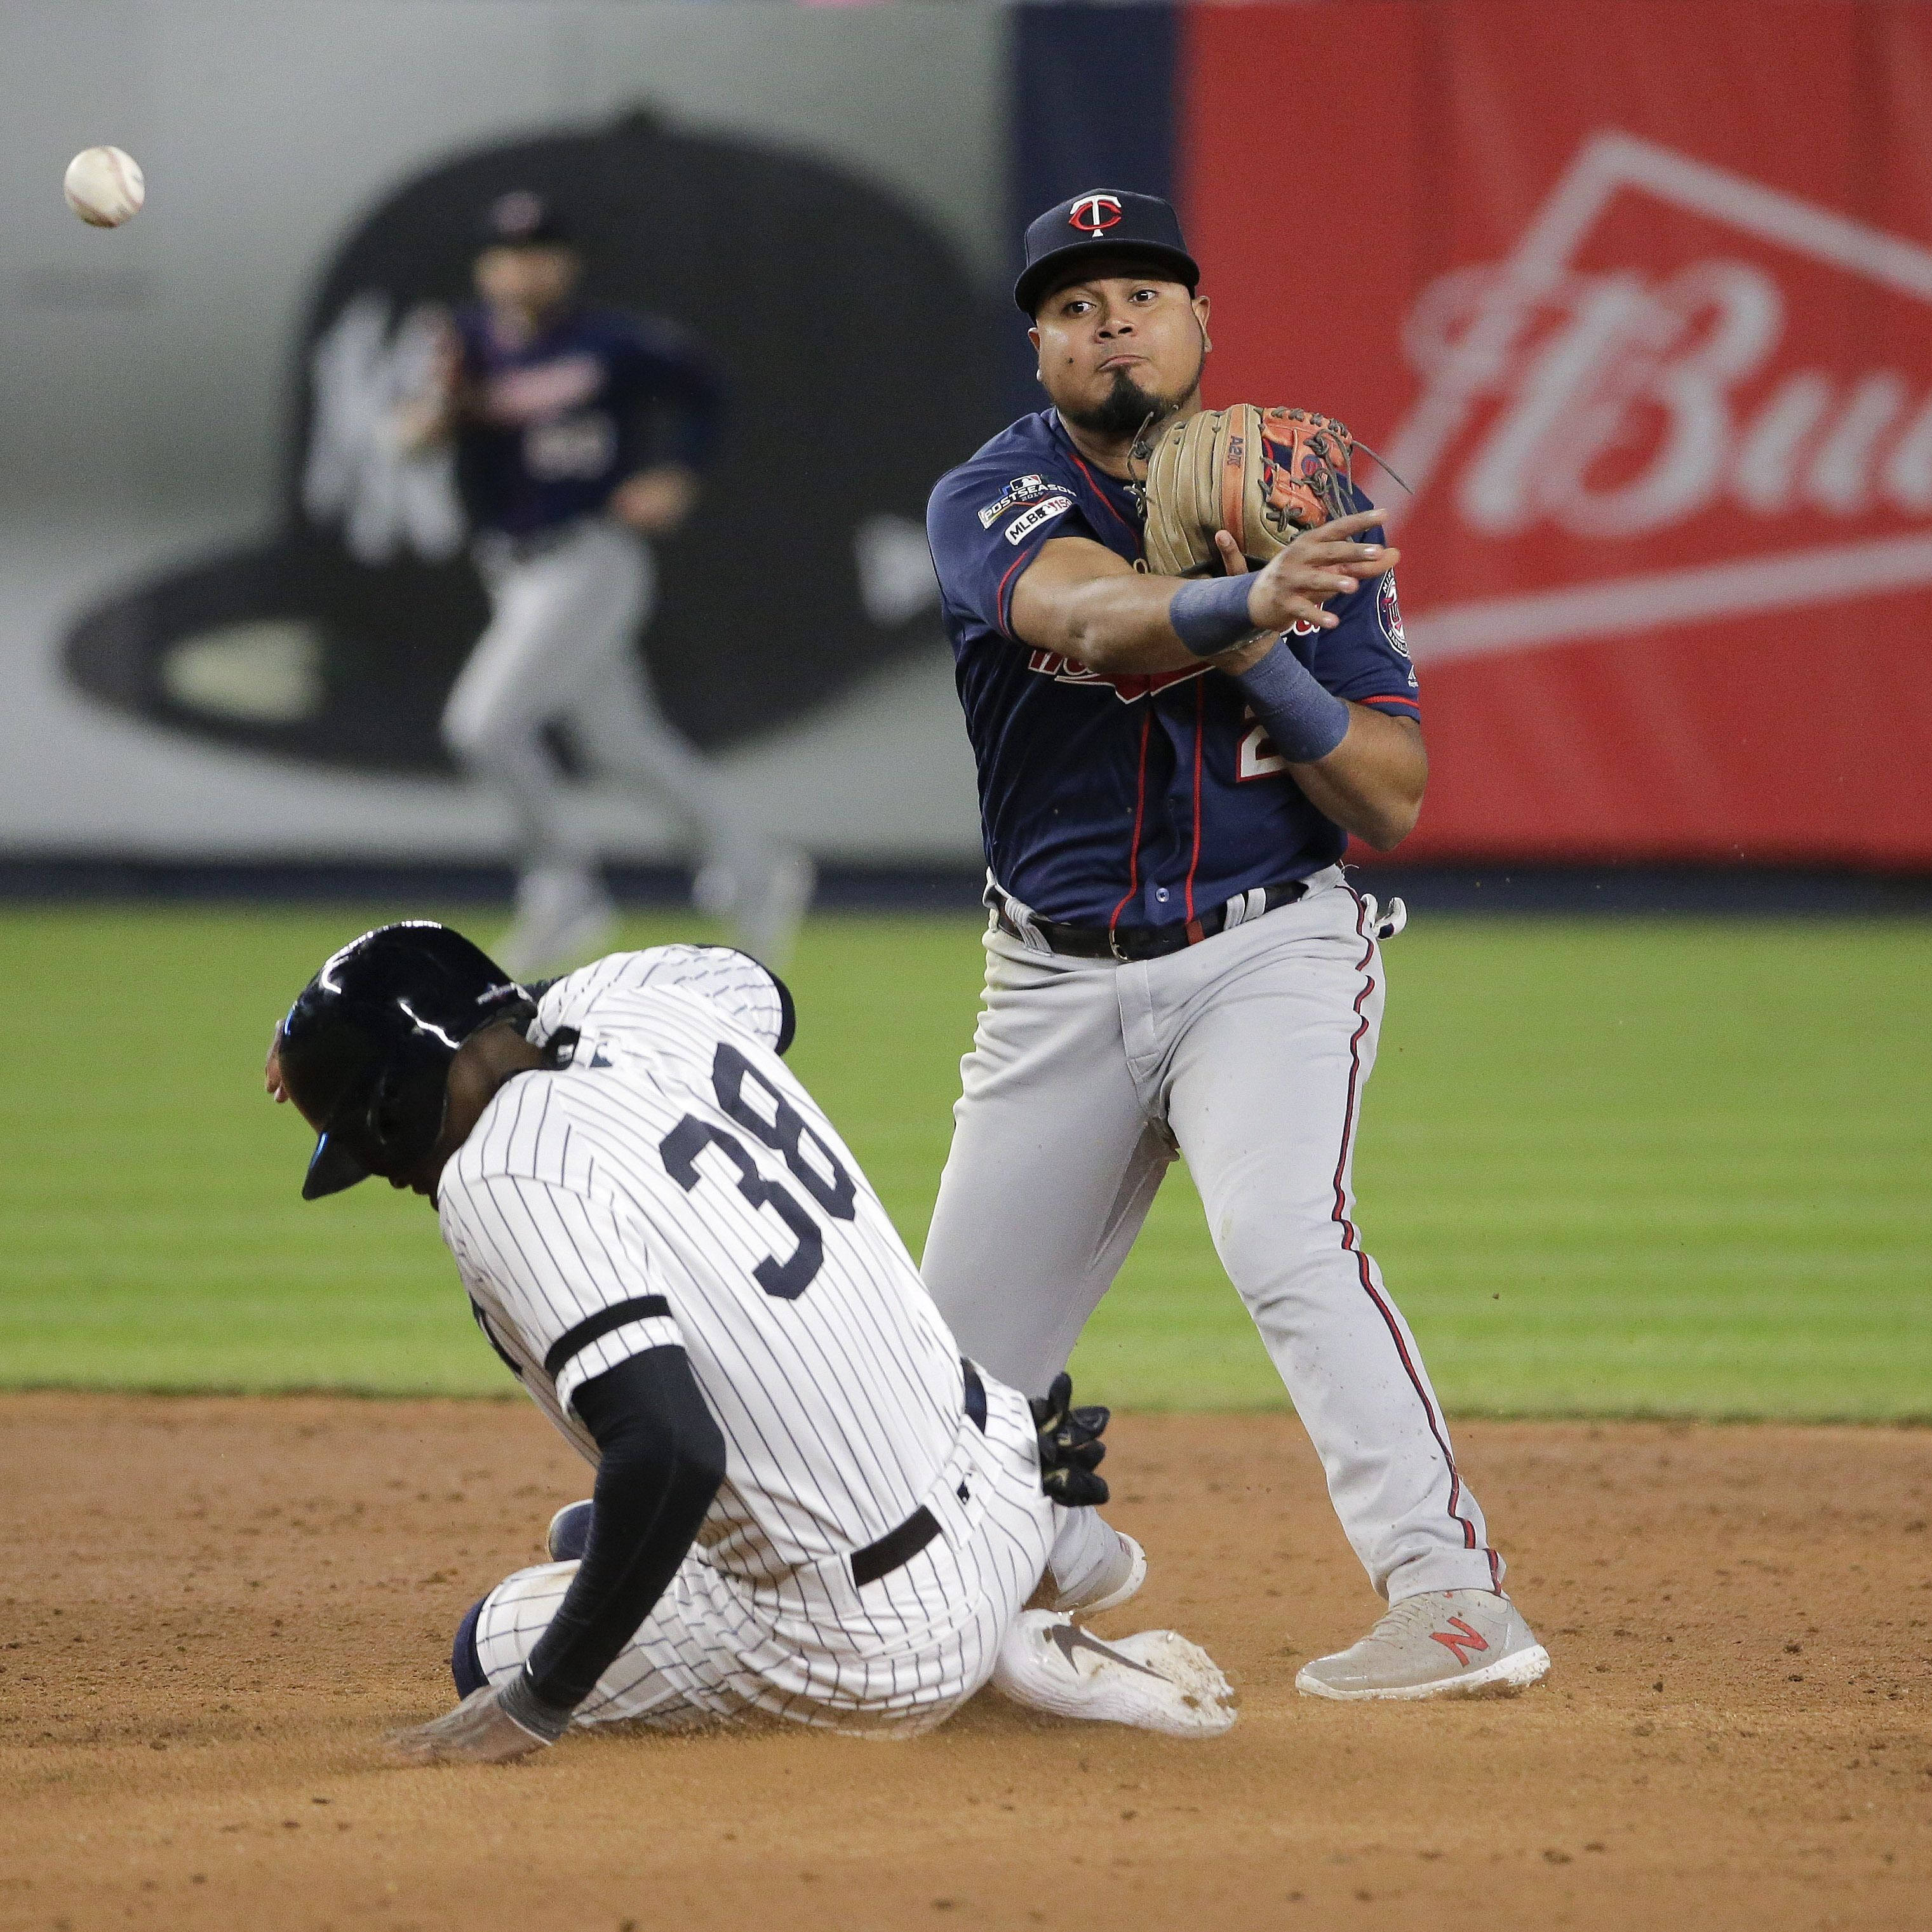 Nlds Game 3 Braves Stun Cardinals With Ninth Inning Rally After Epic Pitchers Duel Braves Atlanta Braves Usa Today Sports